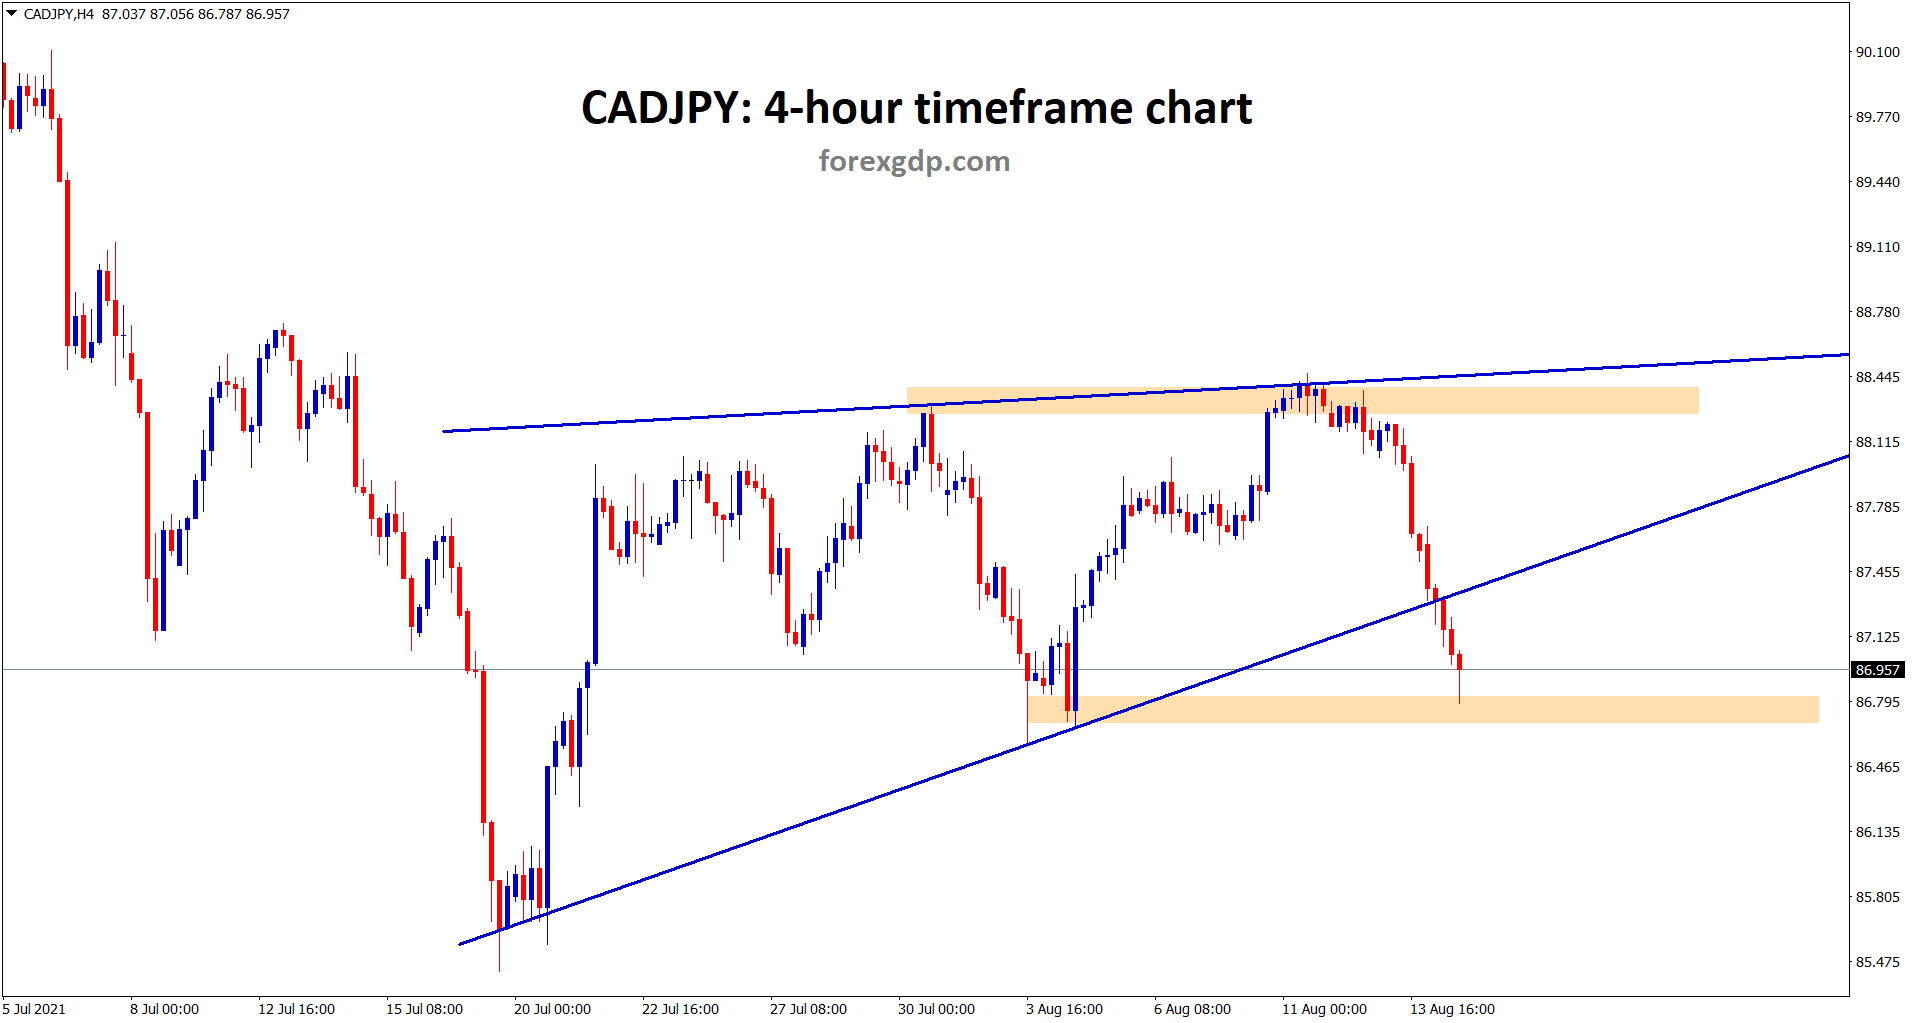 CADJPY hits the horizontal support